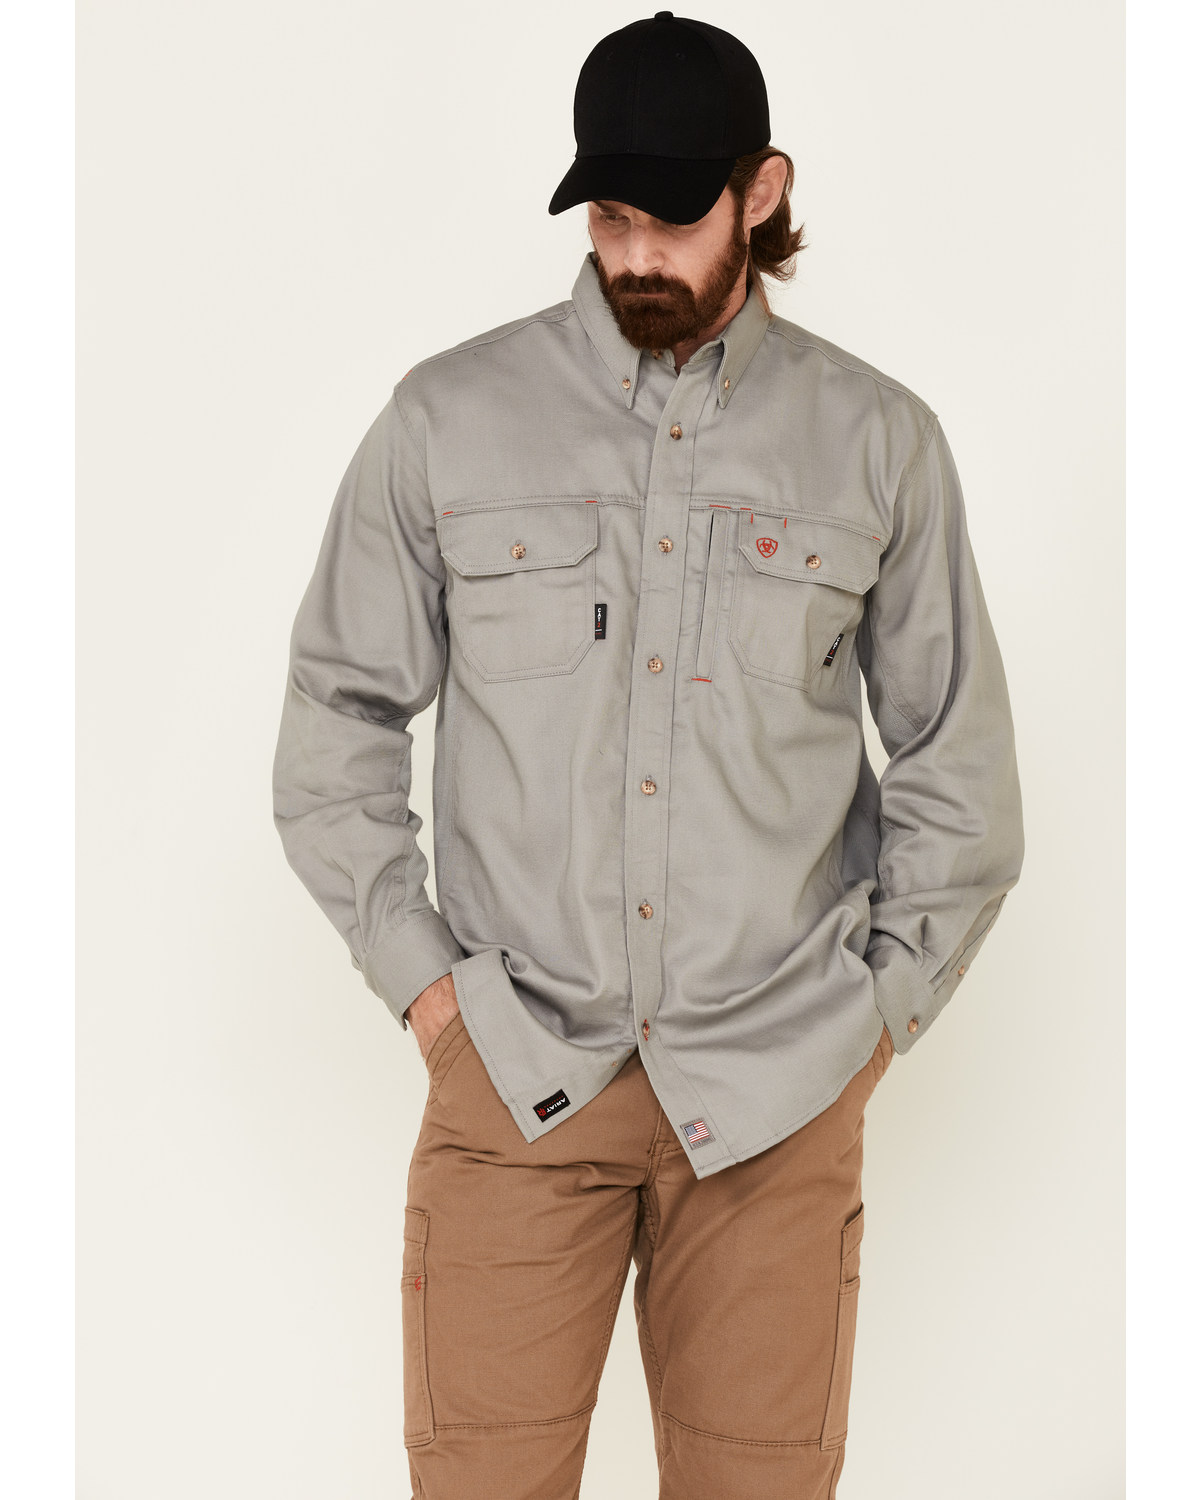 6ab1d4a646f Ariat Men s Fire Resistant Solid Vent Long Sleeve Work Shirt